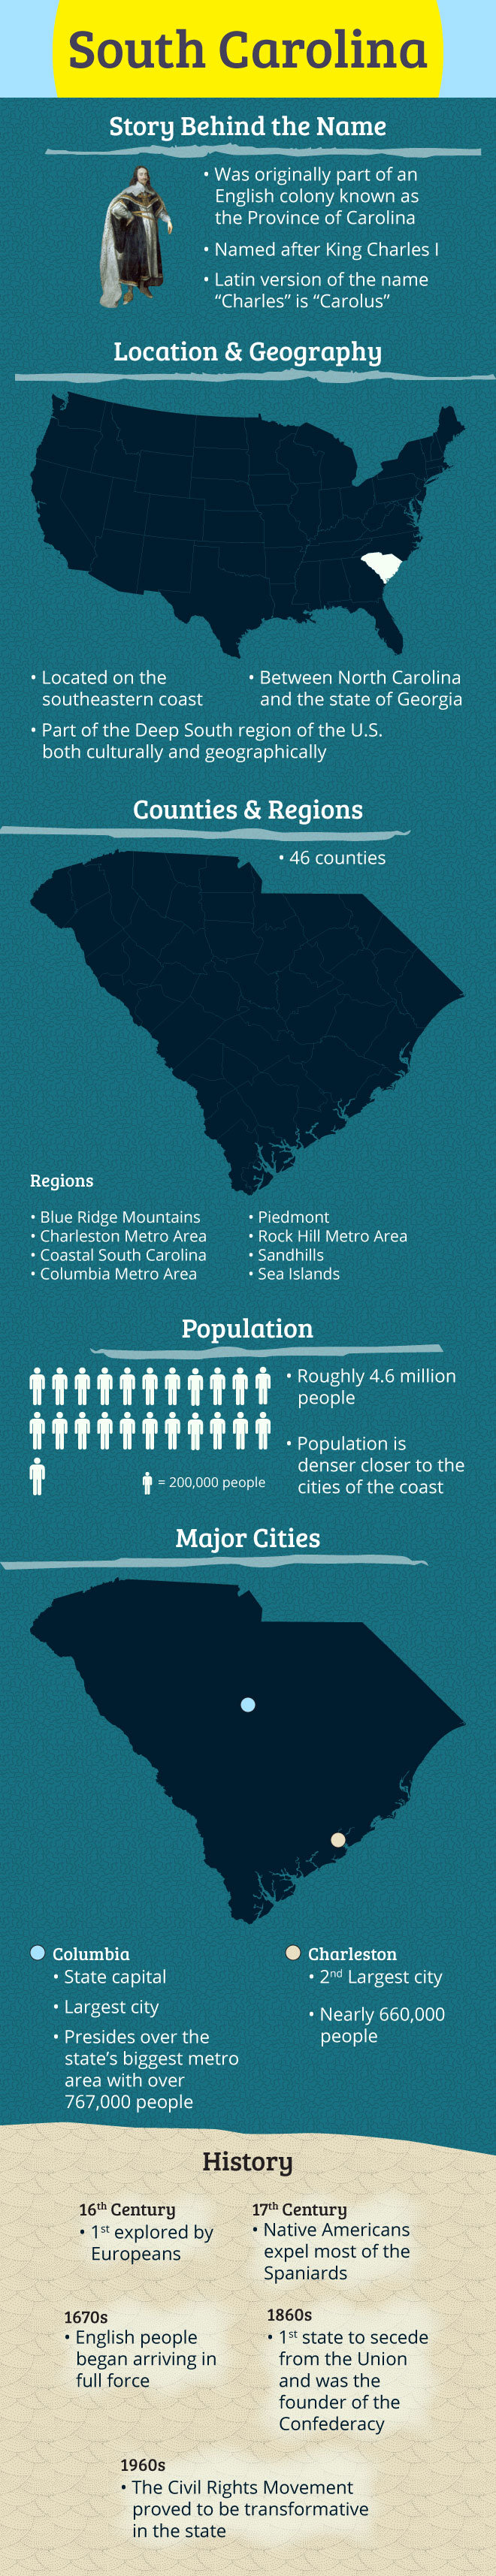 South Carolina story behind the name #infographic